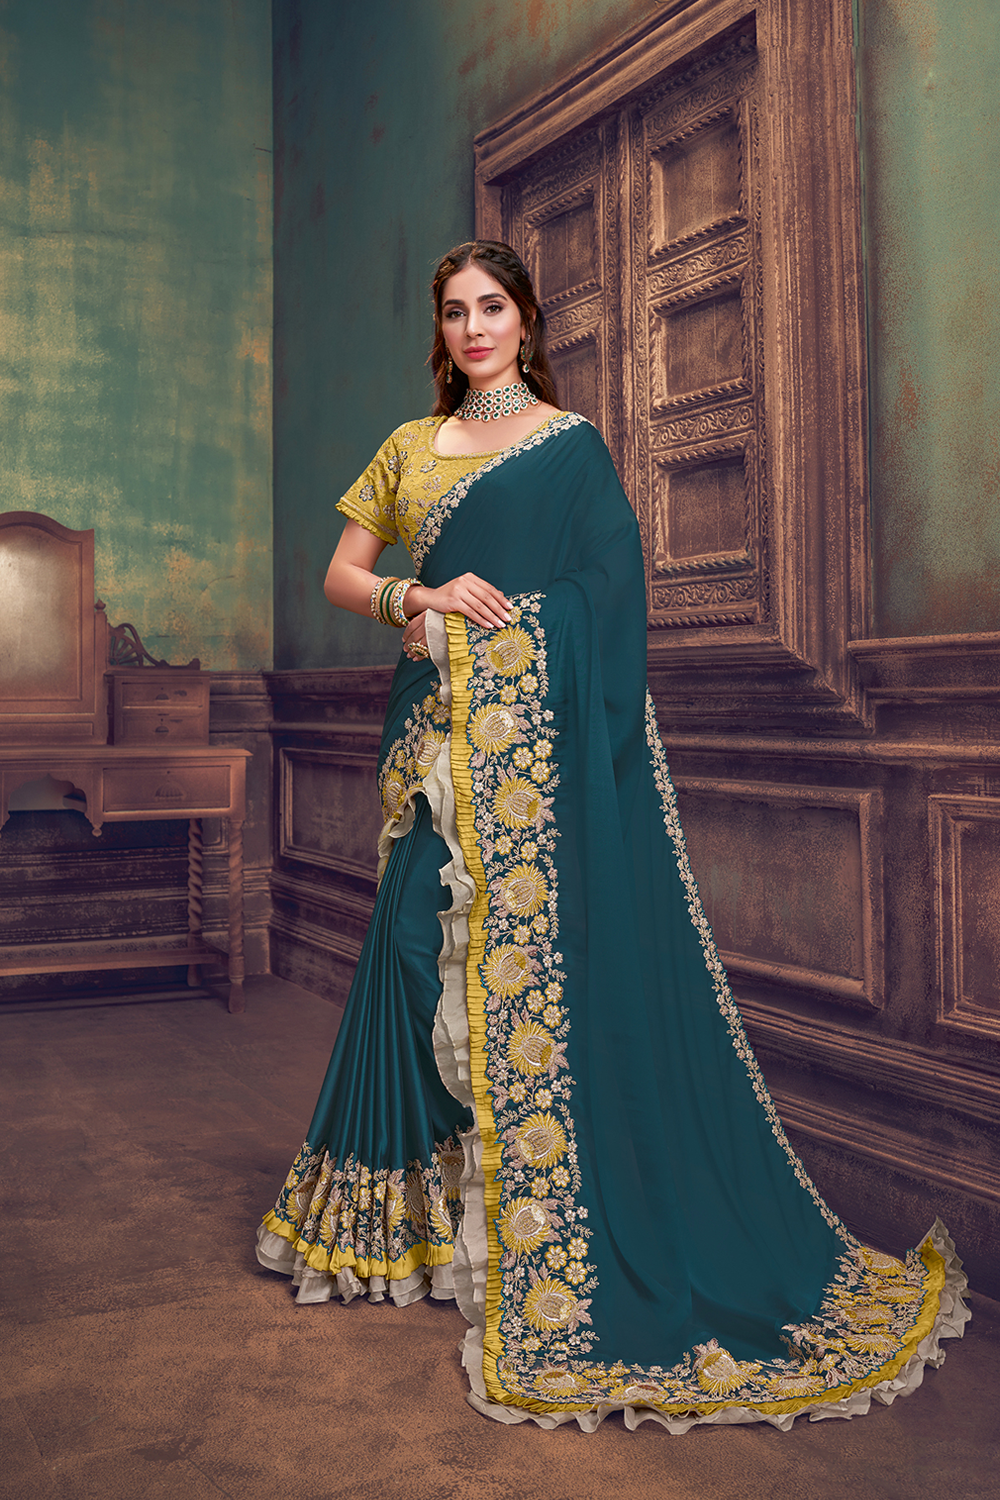 A sensational color combination of deep teal blue and mesmerizing shade of yellow   beige and gold will steal the heart ofthe wearer and the onlookers  With its maharani-like appeal   the saree is a heirloom piece anyone would want to save for the ge